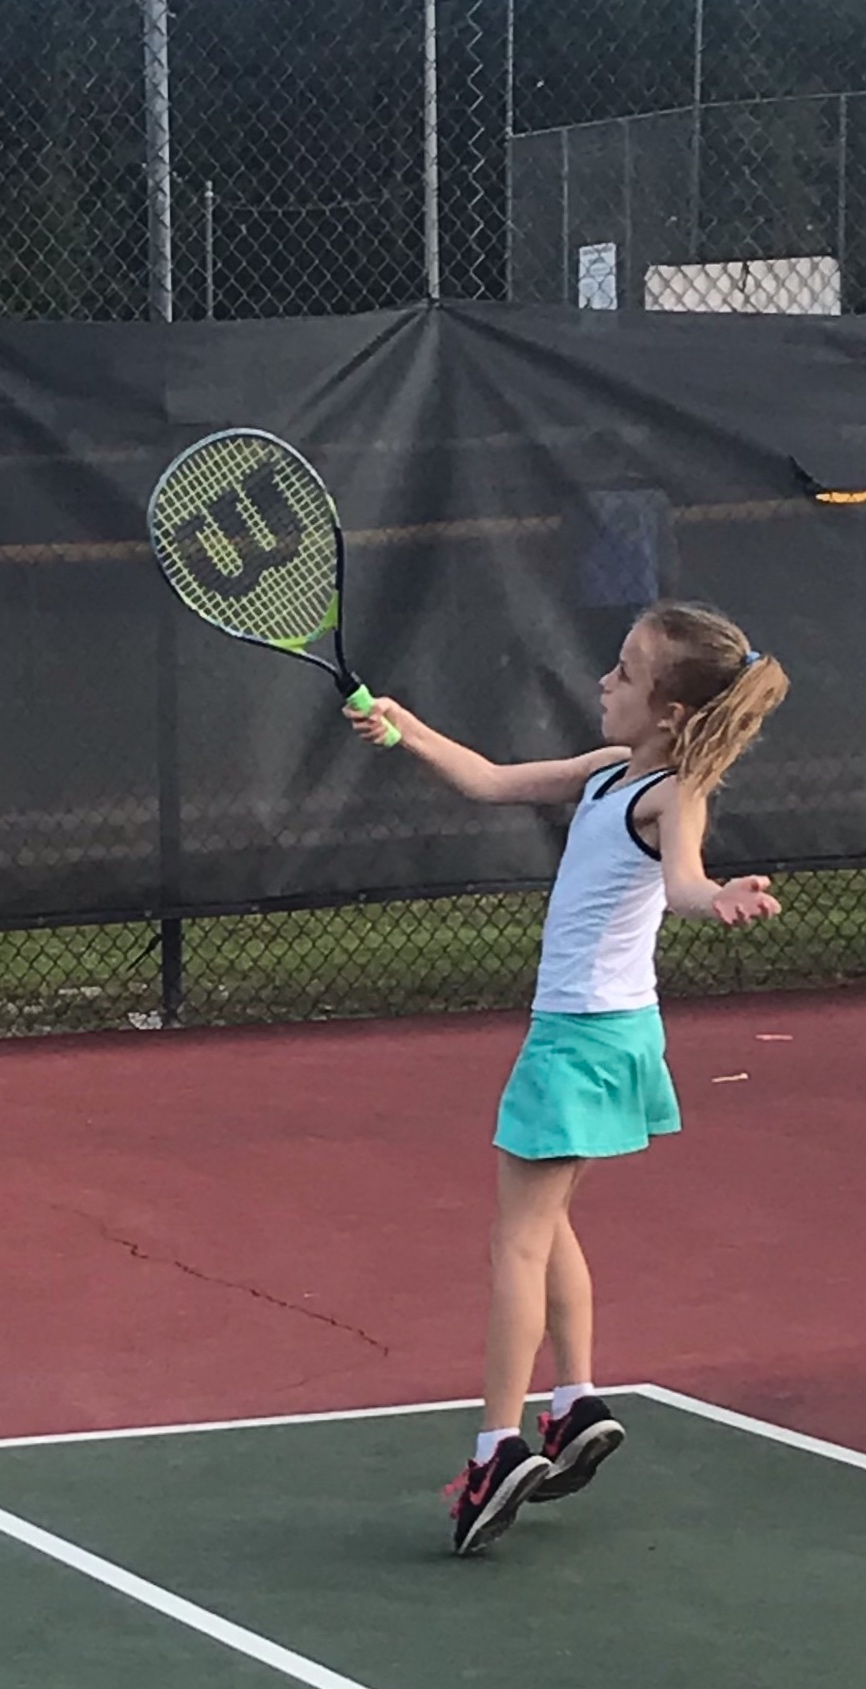 Caroline reaching for a high forehand return.